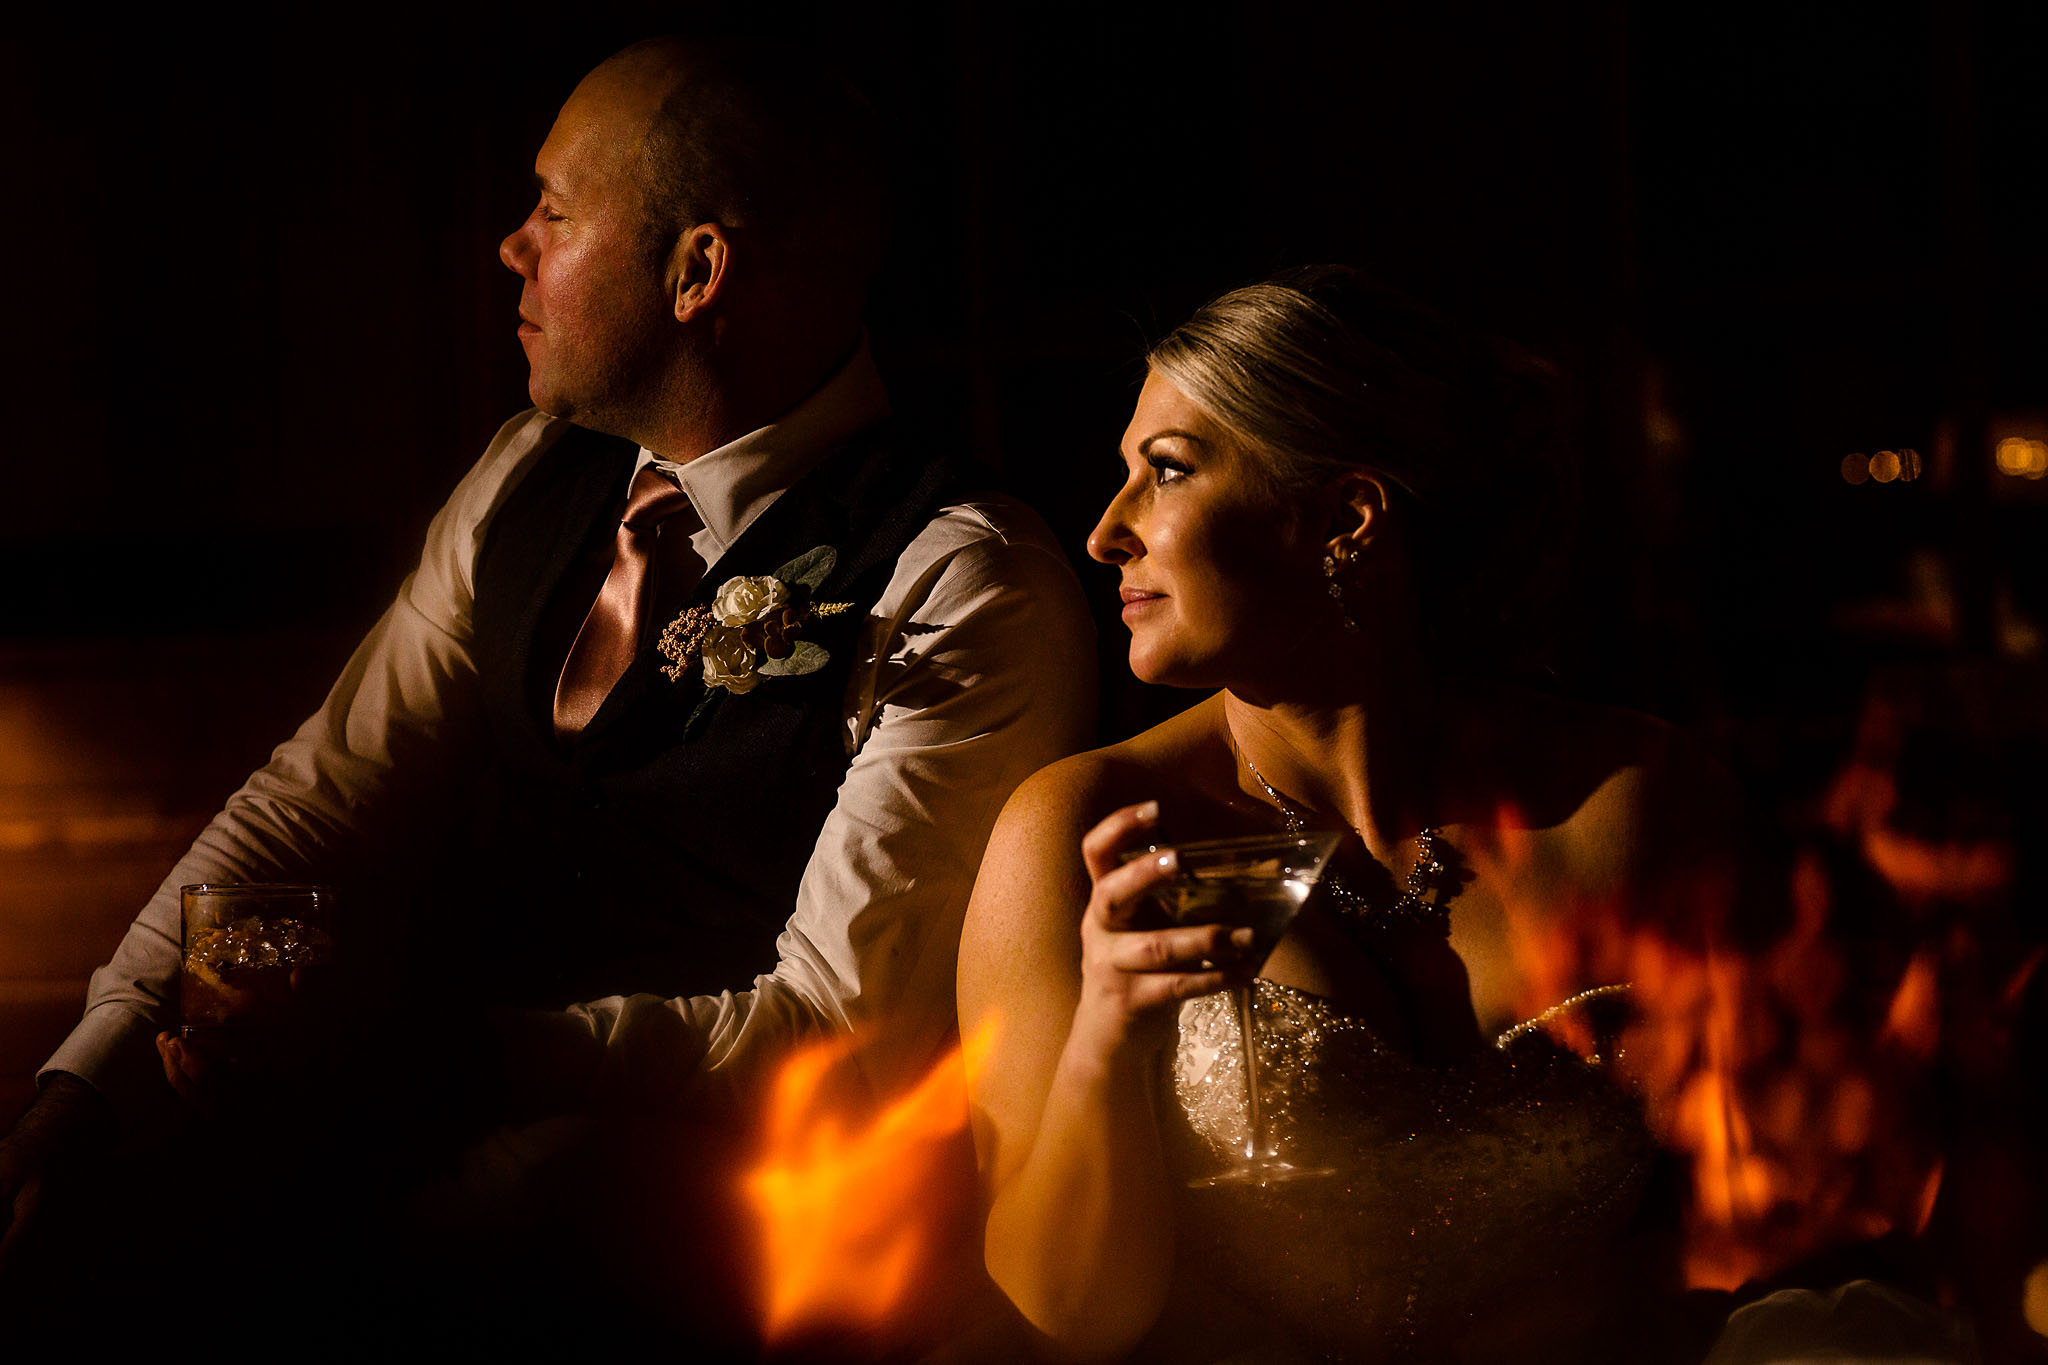 Bride and Groom near fire at Timberline Lodge JOS studios